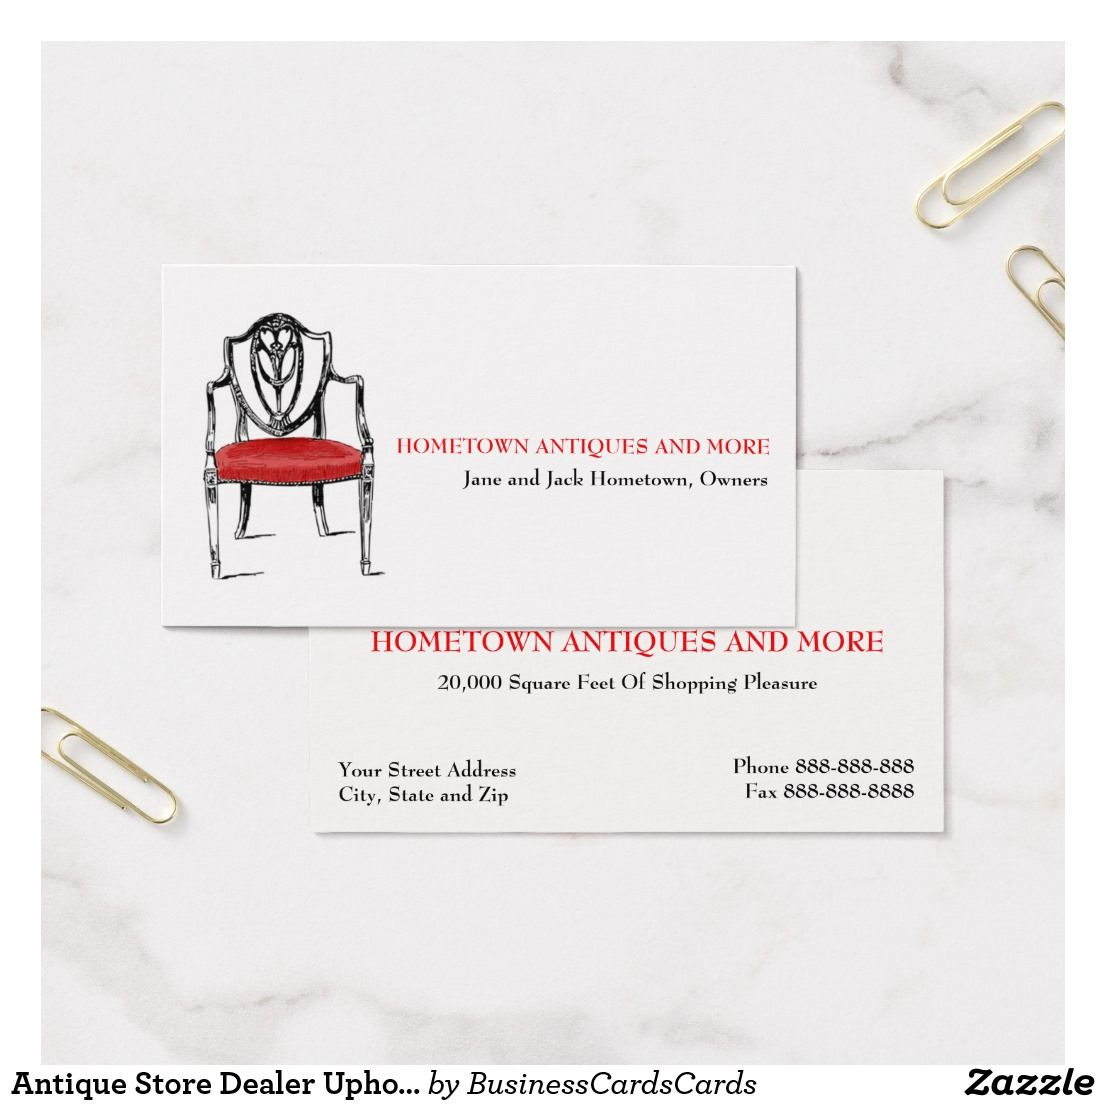 Antique store dealer upholsterer business card custom check out more antique store dealer upholsterer business card custom check out more business card designs at http reheart